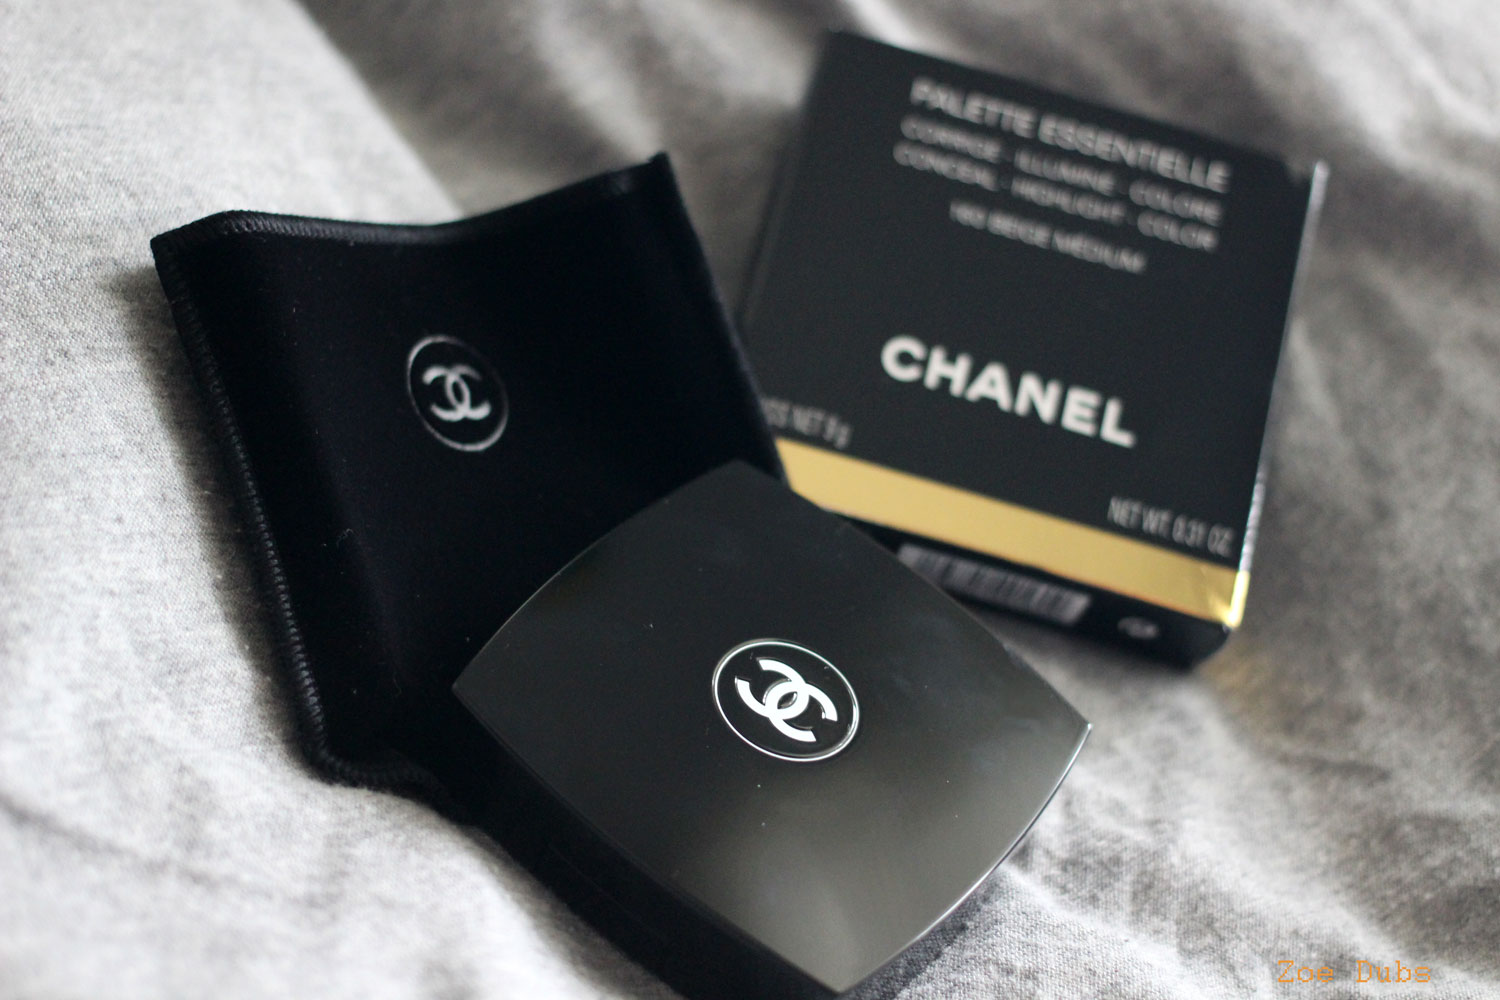 new chanel makeup compact